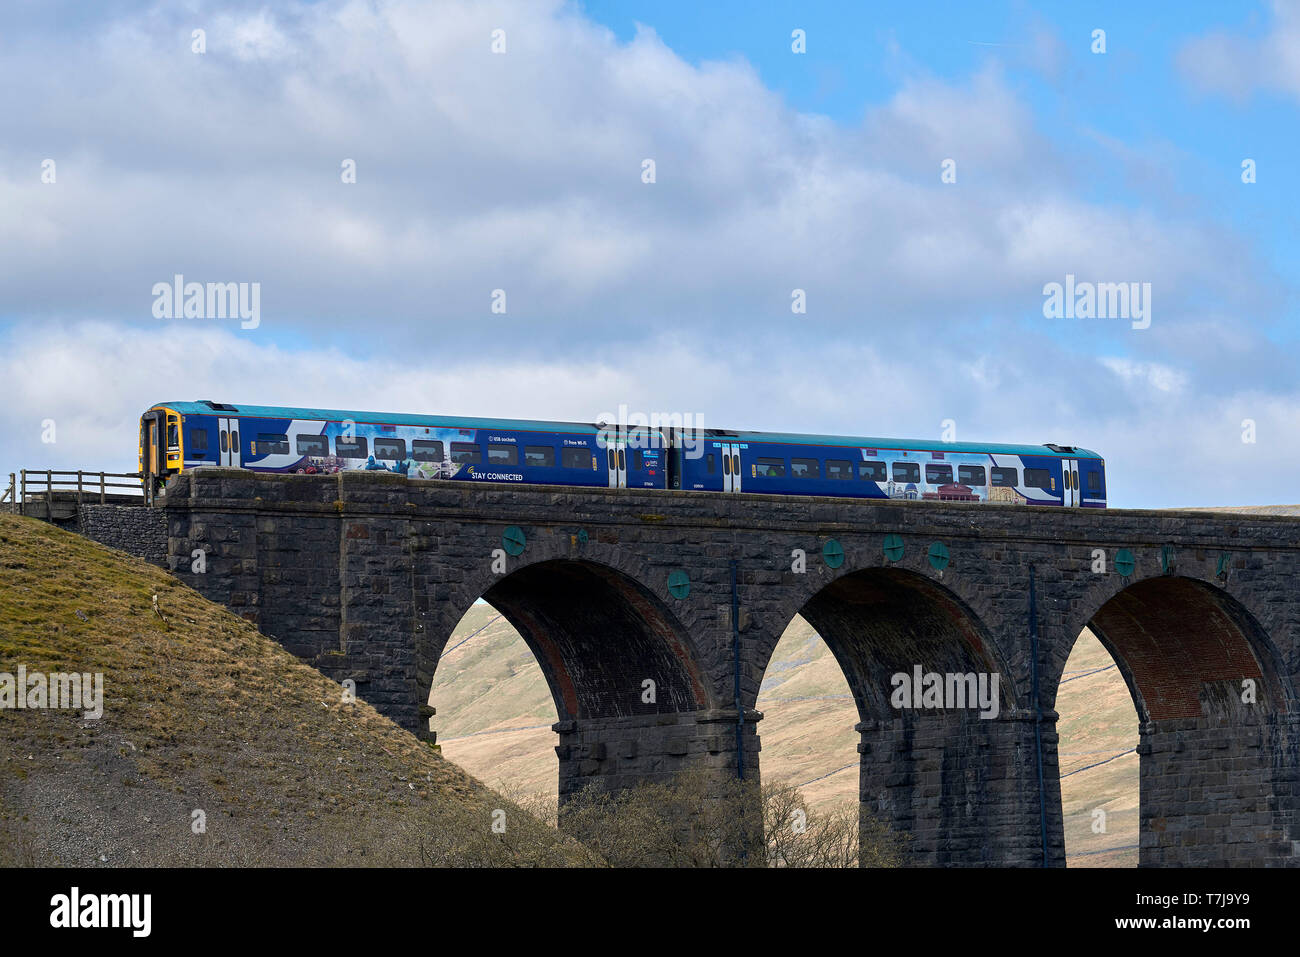 Local train on the Settle & Carlisle Railway, Ribblehead, North Yorkshire, northern England, UK - Stock Image